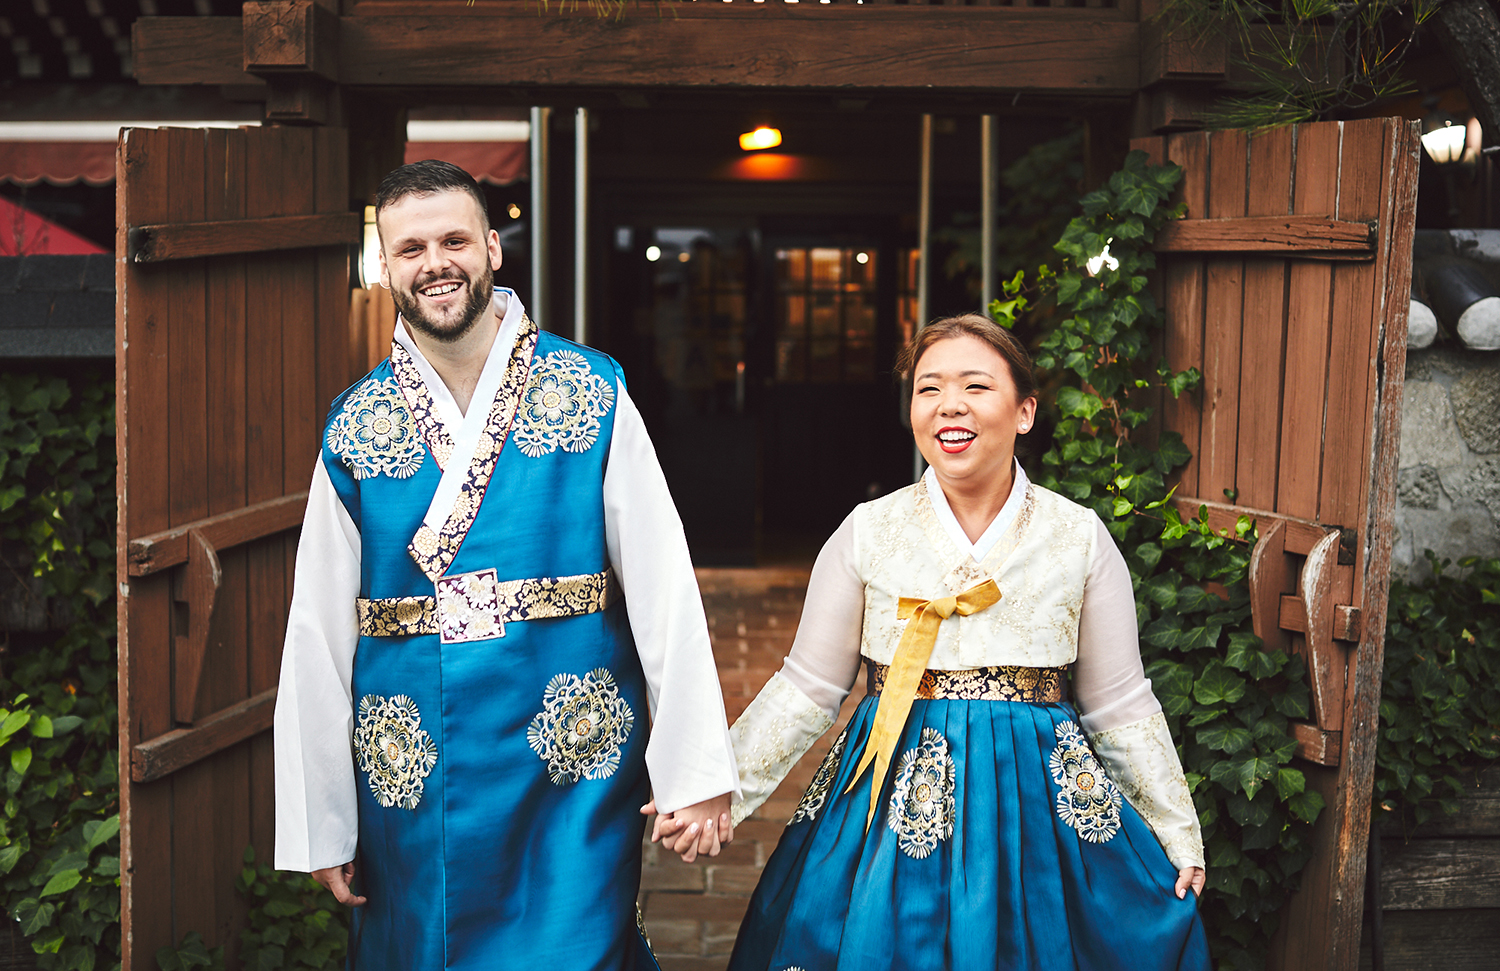 180920_KumGangSanRestaurantQueensPyebaekCeremony_NewYorkWeddingPhotographer_By_BriJohnsonWeddings_0011.jpg